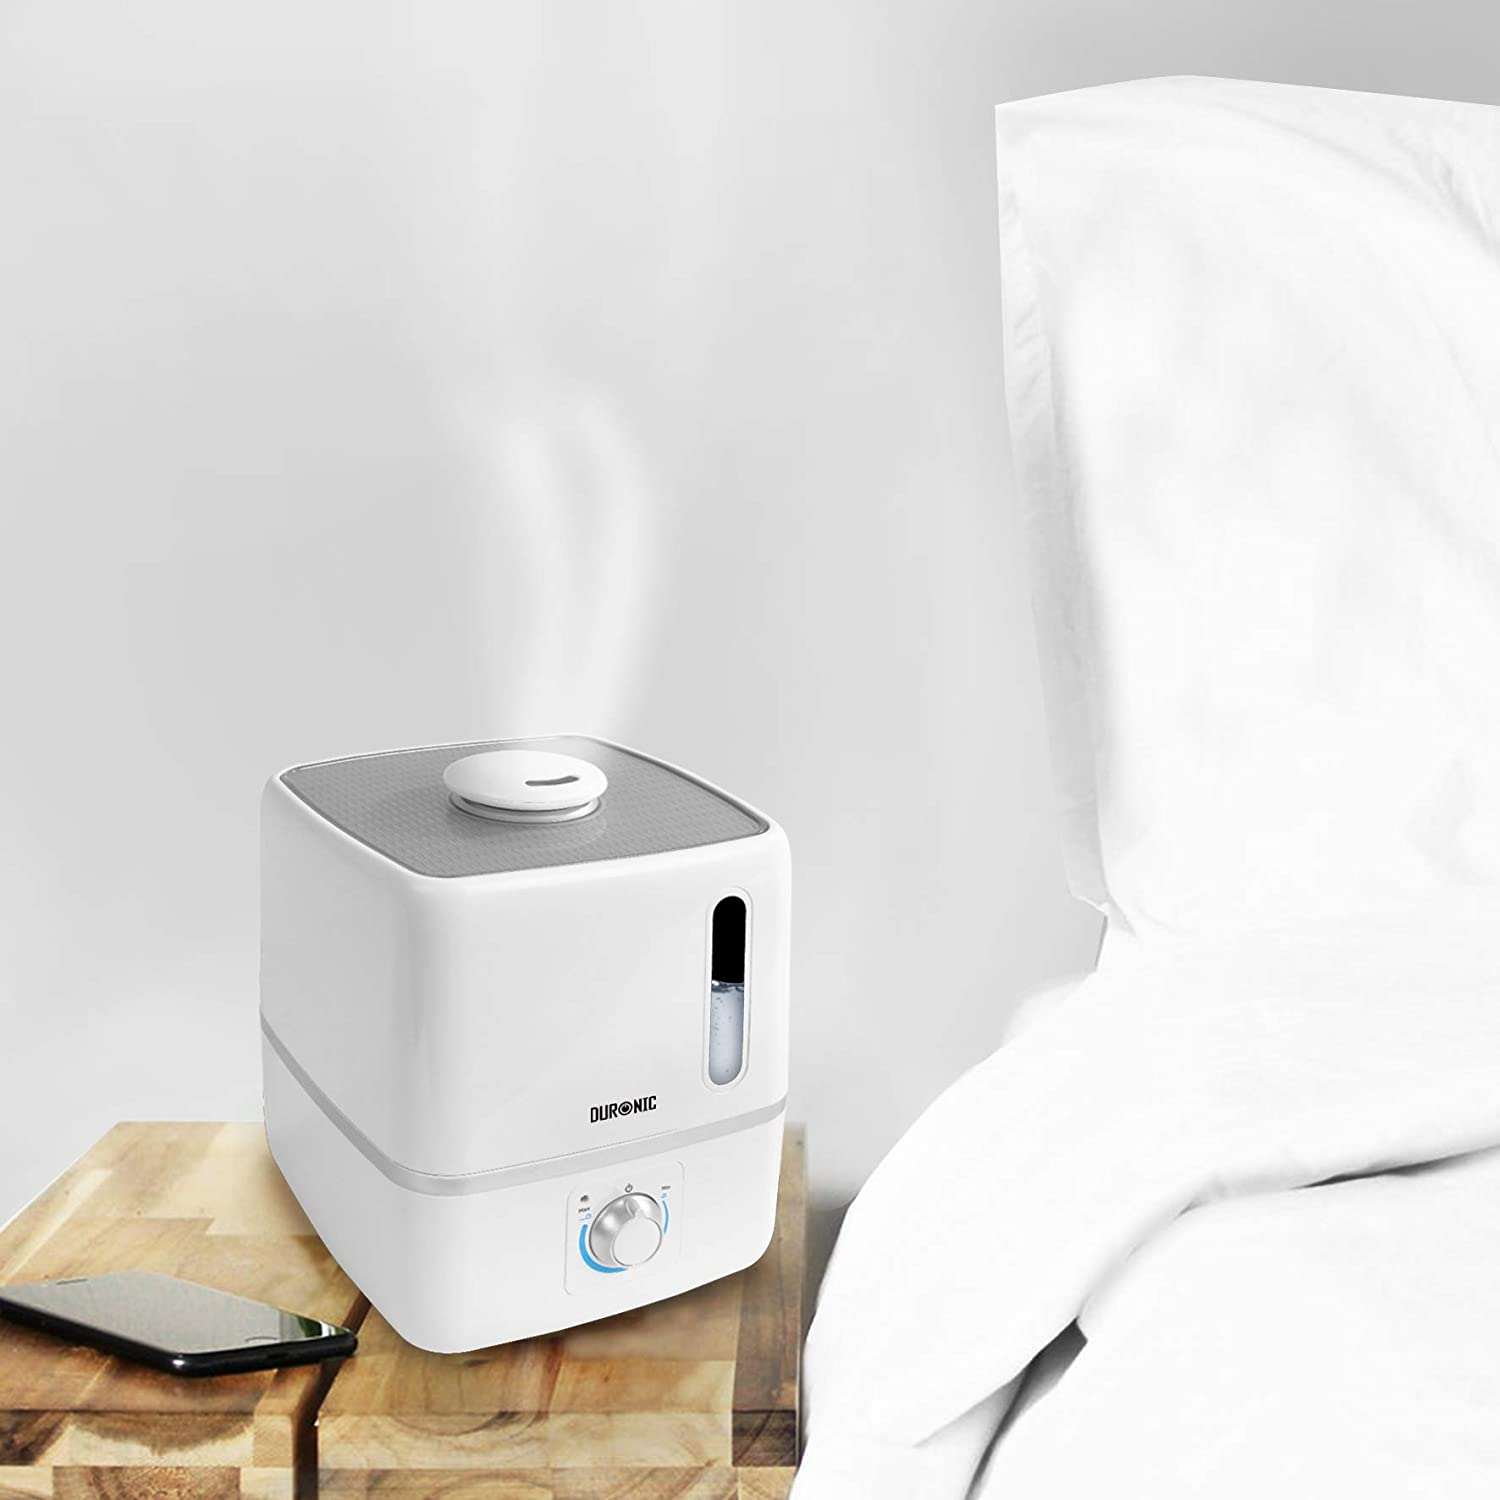 Duronic Humidifier HR3L | Cool Mist | Aromatherapy Essential Oil Diffuser | Large 3L Water Tank | Ultrasonic | Auto Shut Off Function | For Baby's